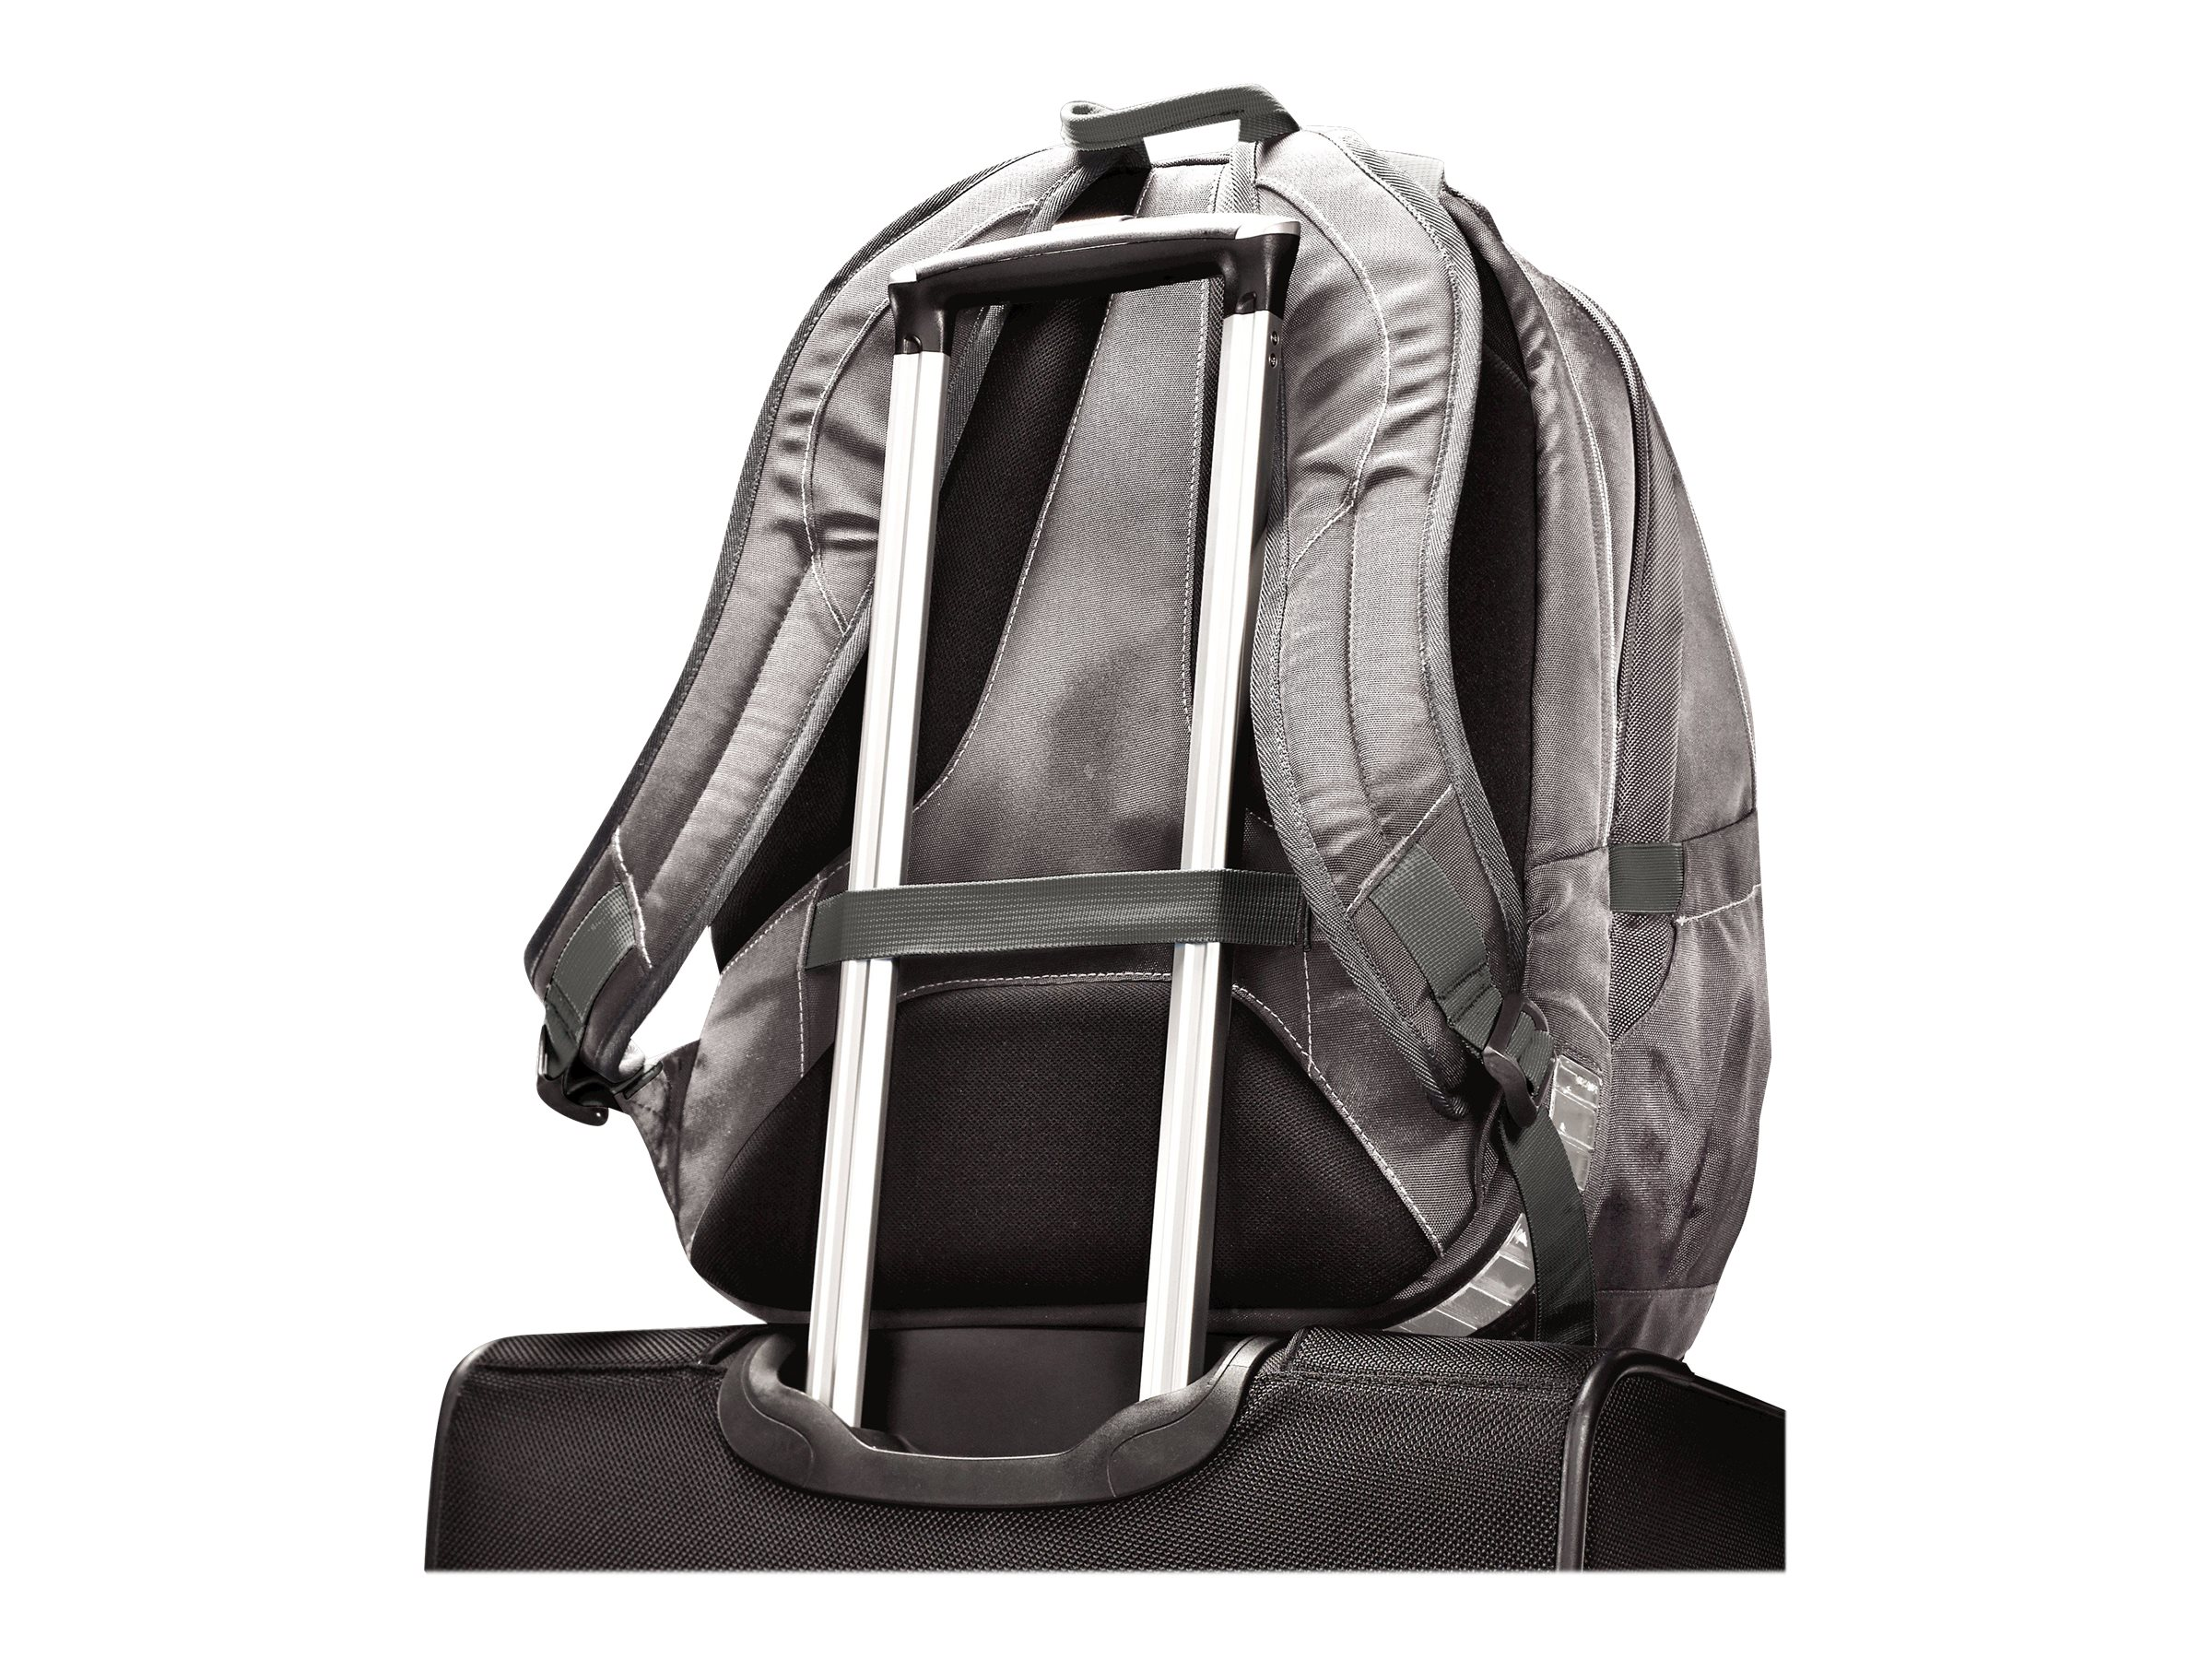 Stephen Gould Viz Air Backpack 15.6, Gray w  Smoke Trim, 66256-1408